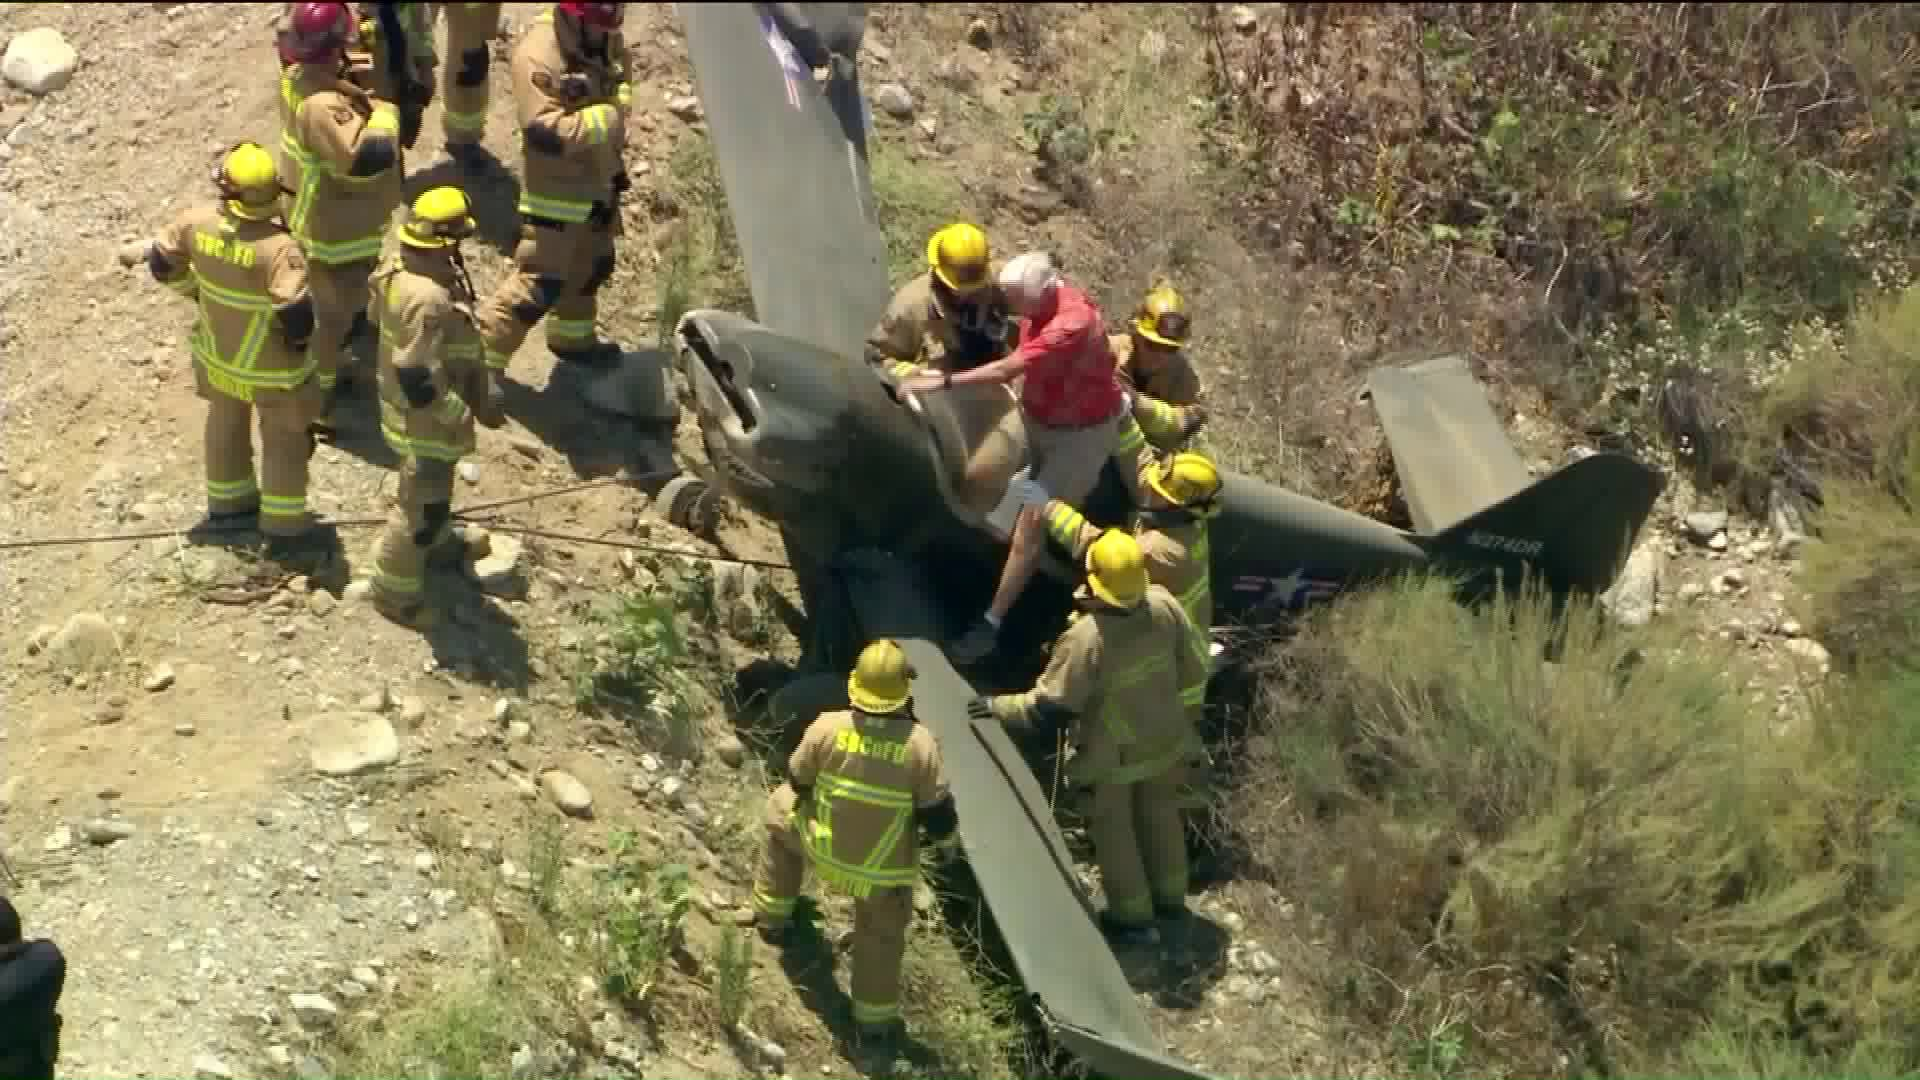 Firefighters help a pilot out of a small aircraft in the Upland area on June 24, 2020. (Sky5)